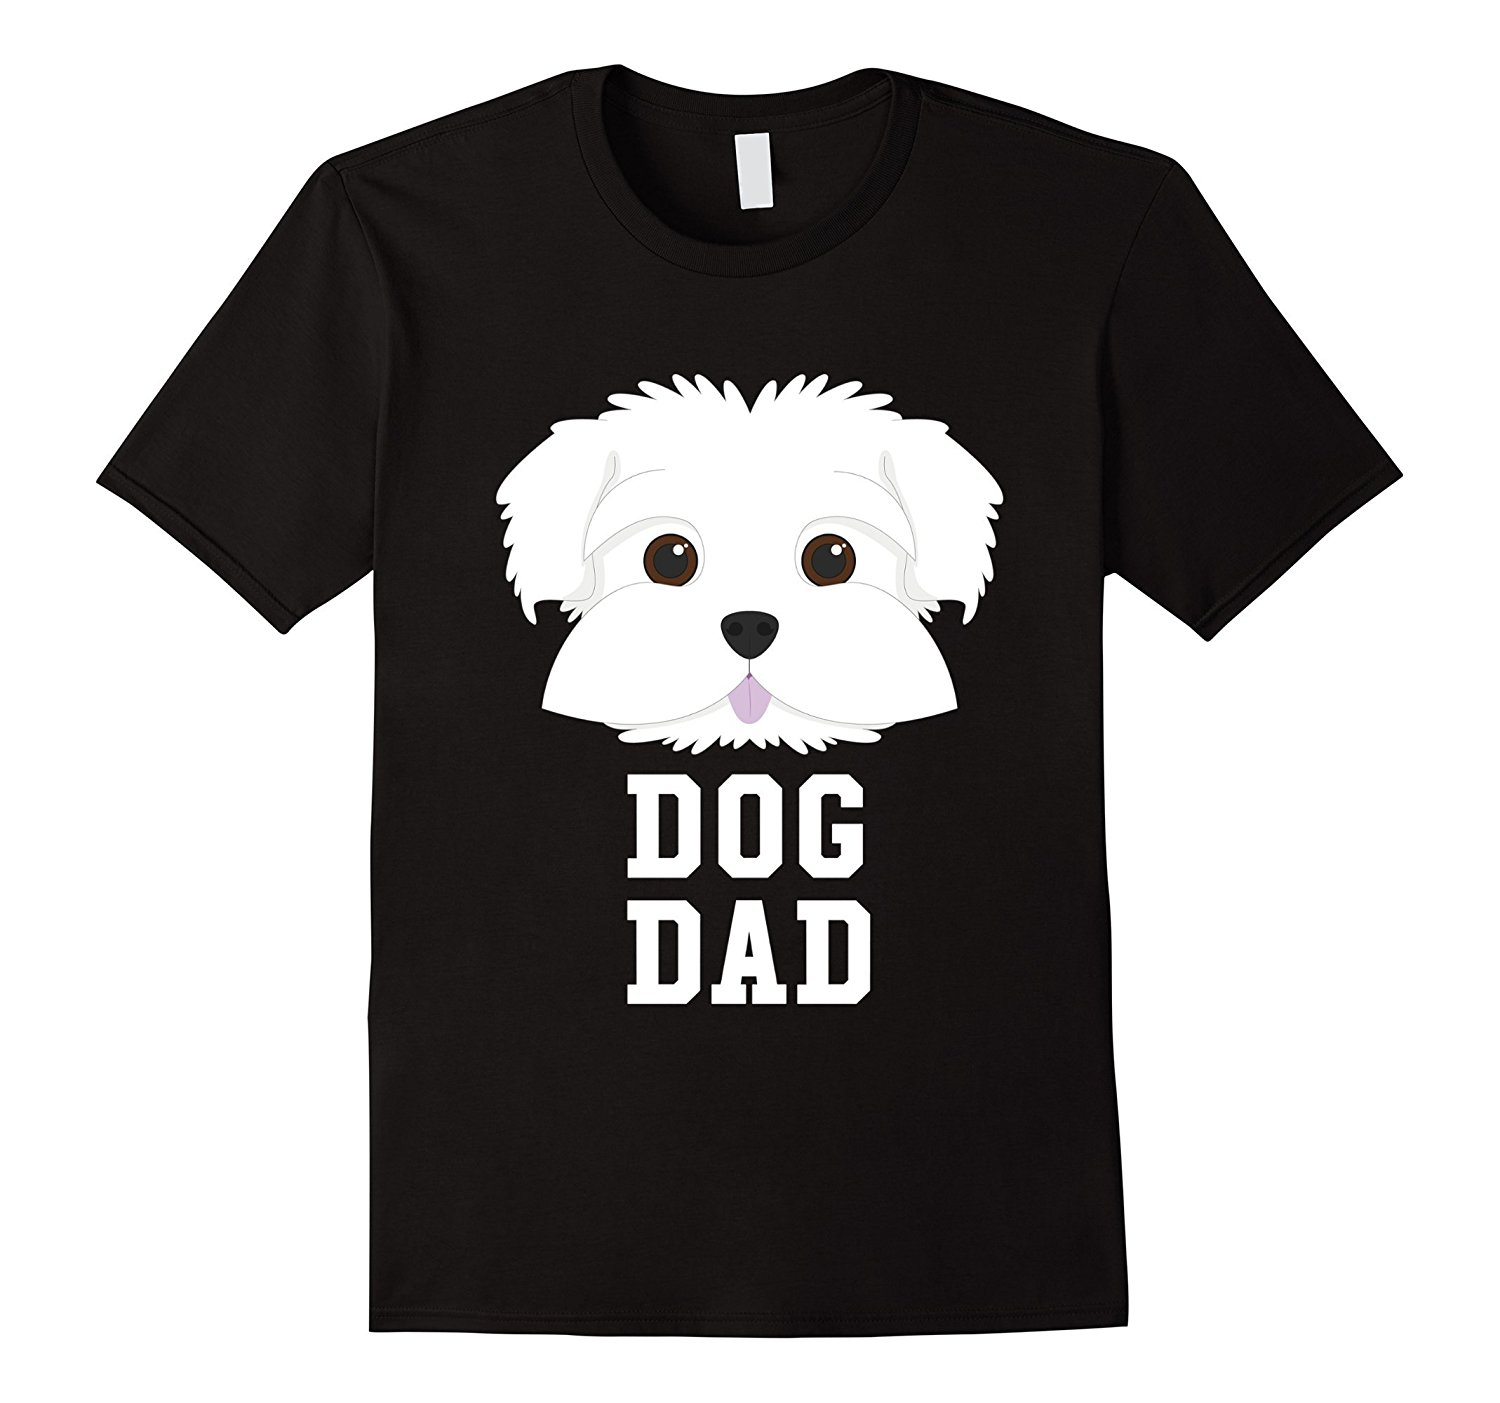 Dog Dad Maltese - Fathers Day T-Shirt 100% Cotton Geek Family Top Tee 2018 New Arrival 2018 New Fashion T Shirt Men Cotton